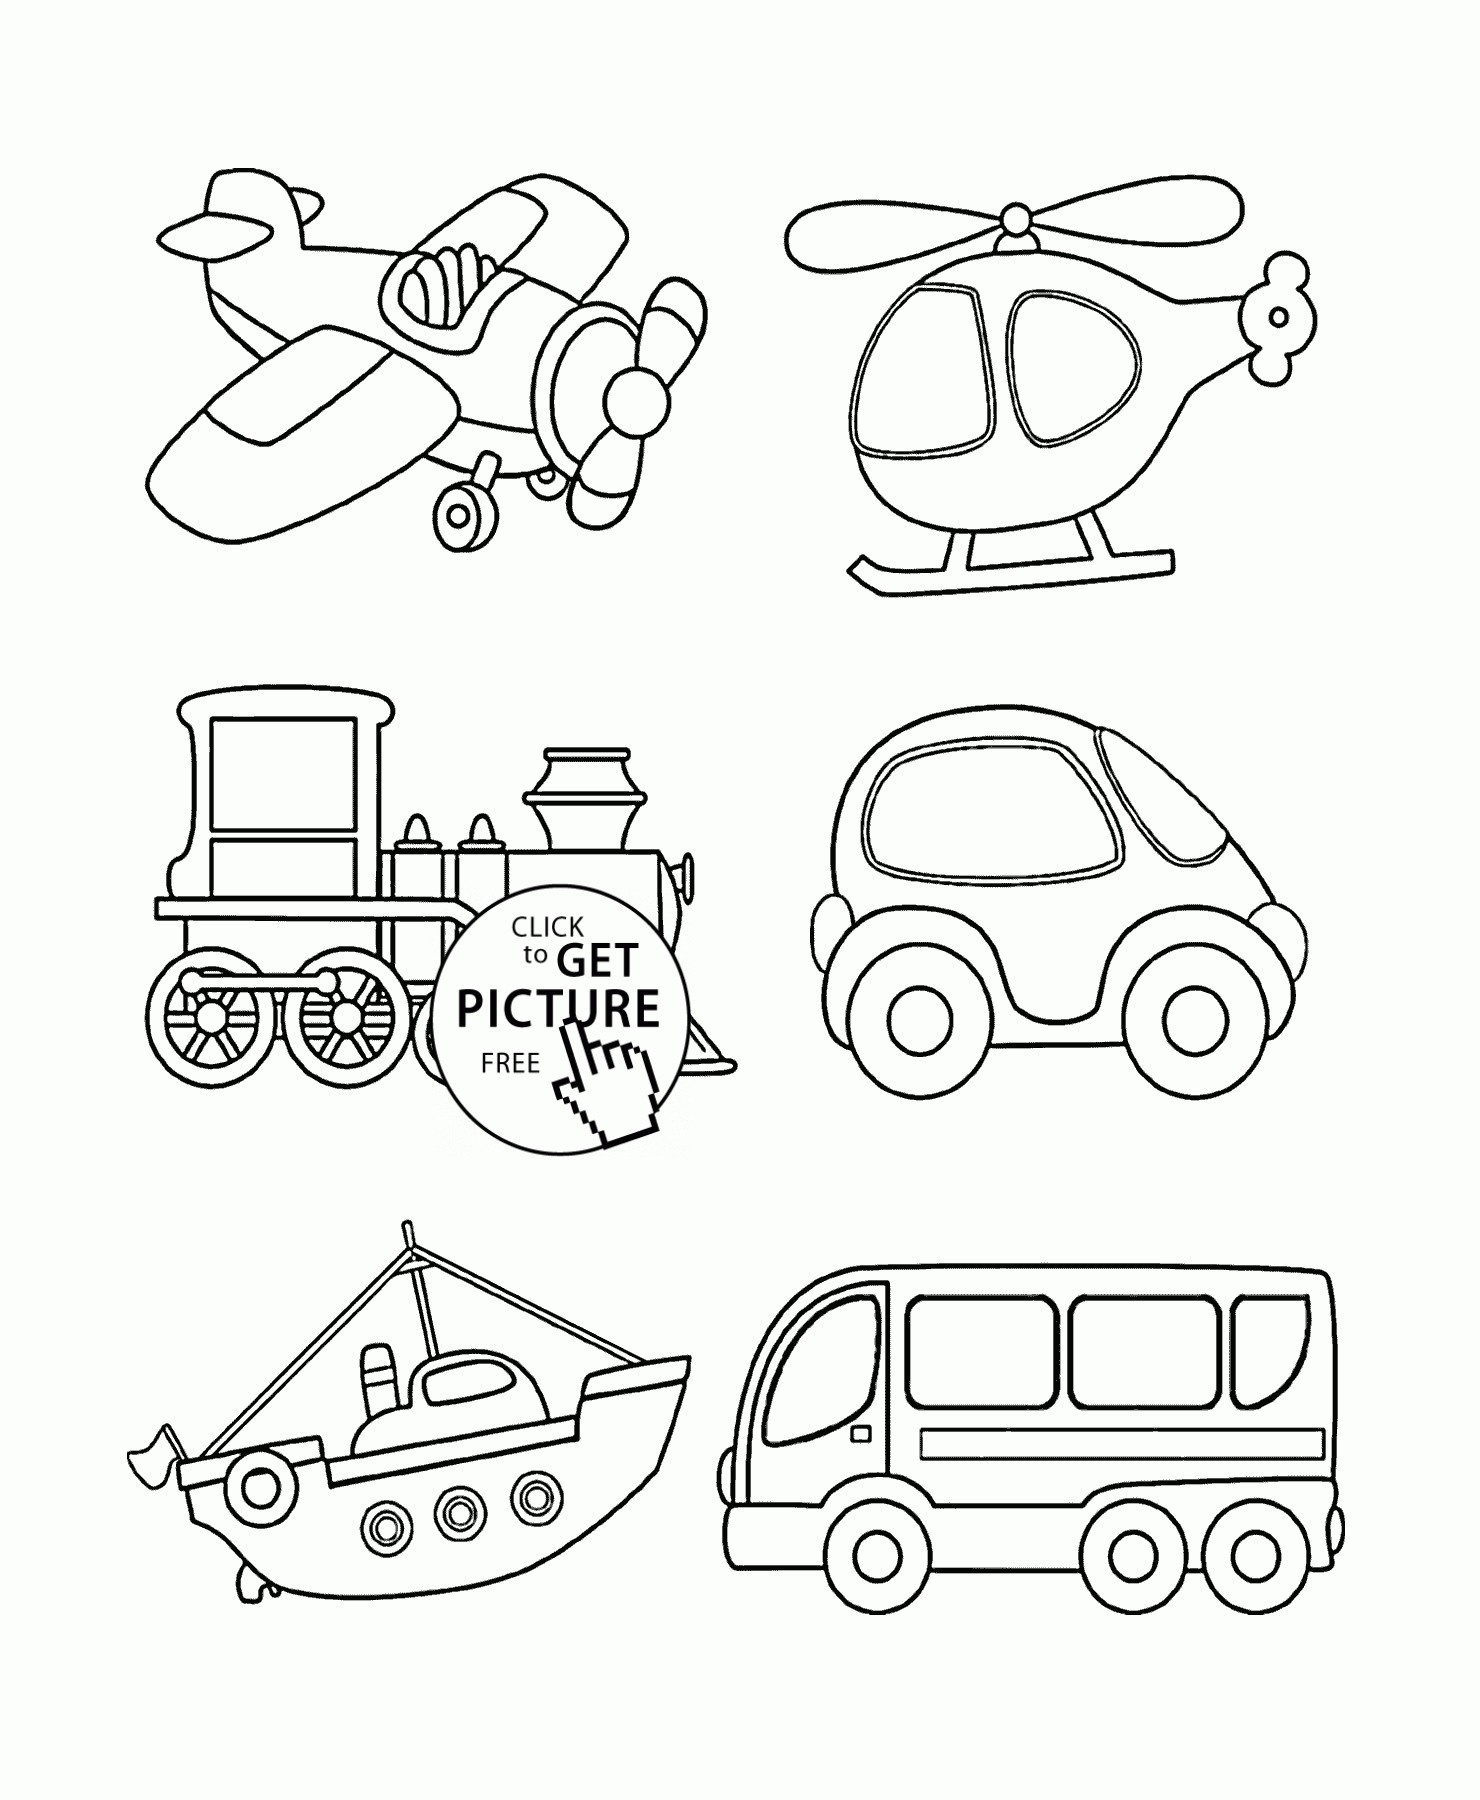 1480x1800 Train Transportation Coloring Pages For Kids Inspirational